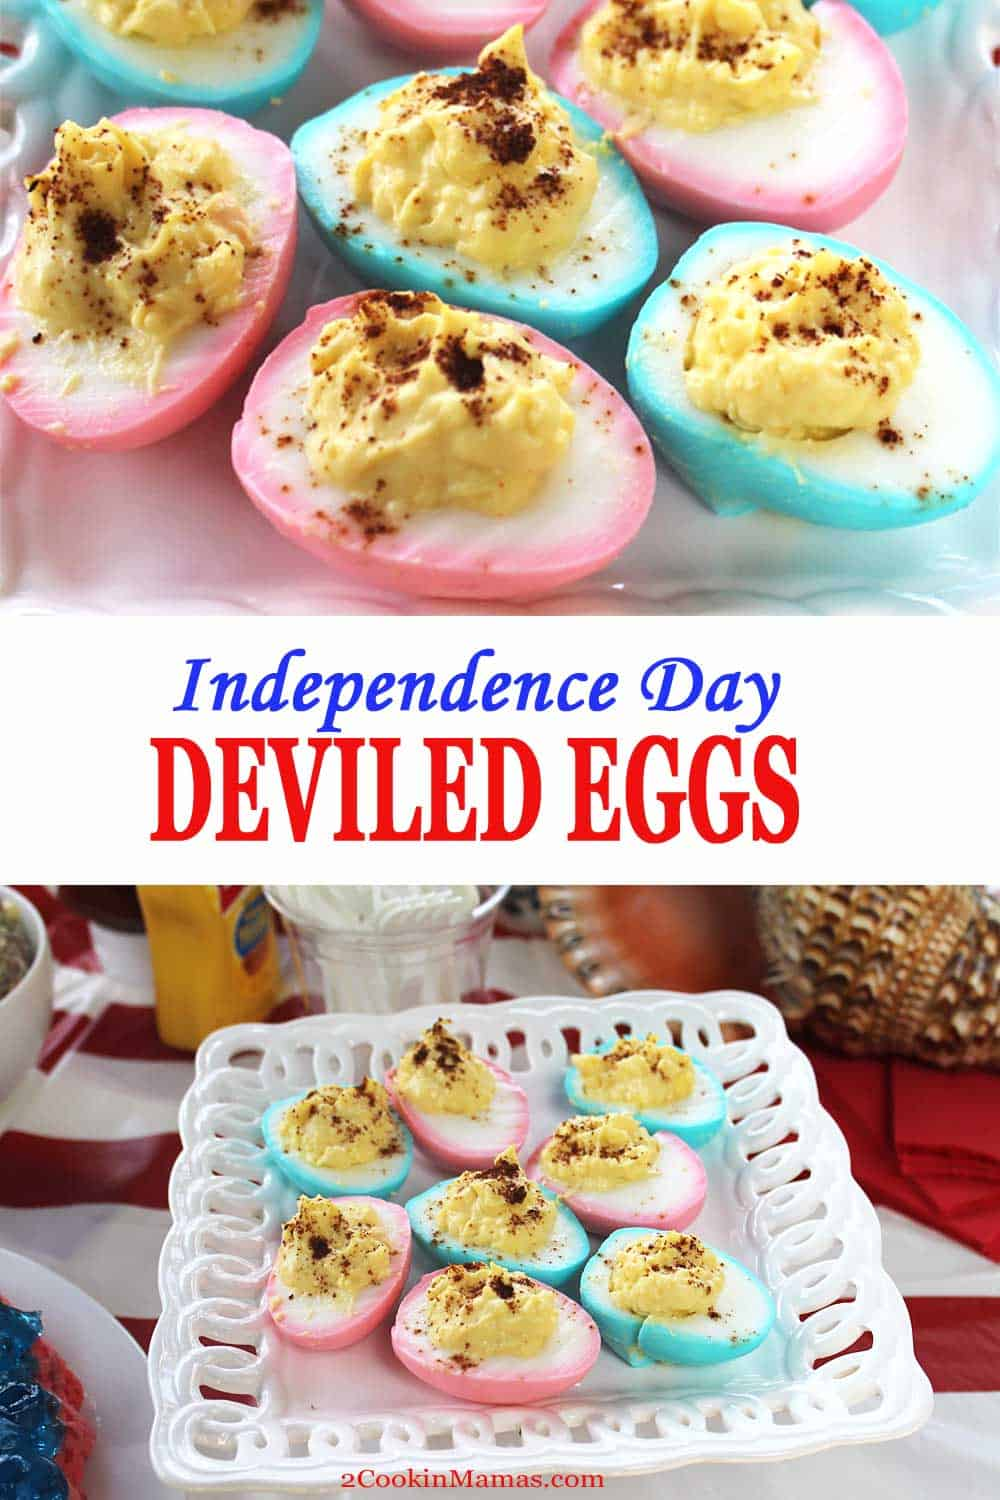 The perfect 4th of July picnic side dish - Independence Day Deviled Eggs. Hard boiled eggs are colored red and blue then filled with a tangy egg mixture. #deviledeggs #july4th #sidedish #recipe #easy #coloredeggs #picnic